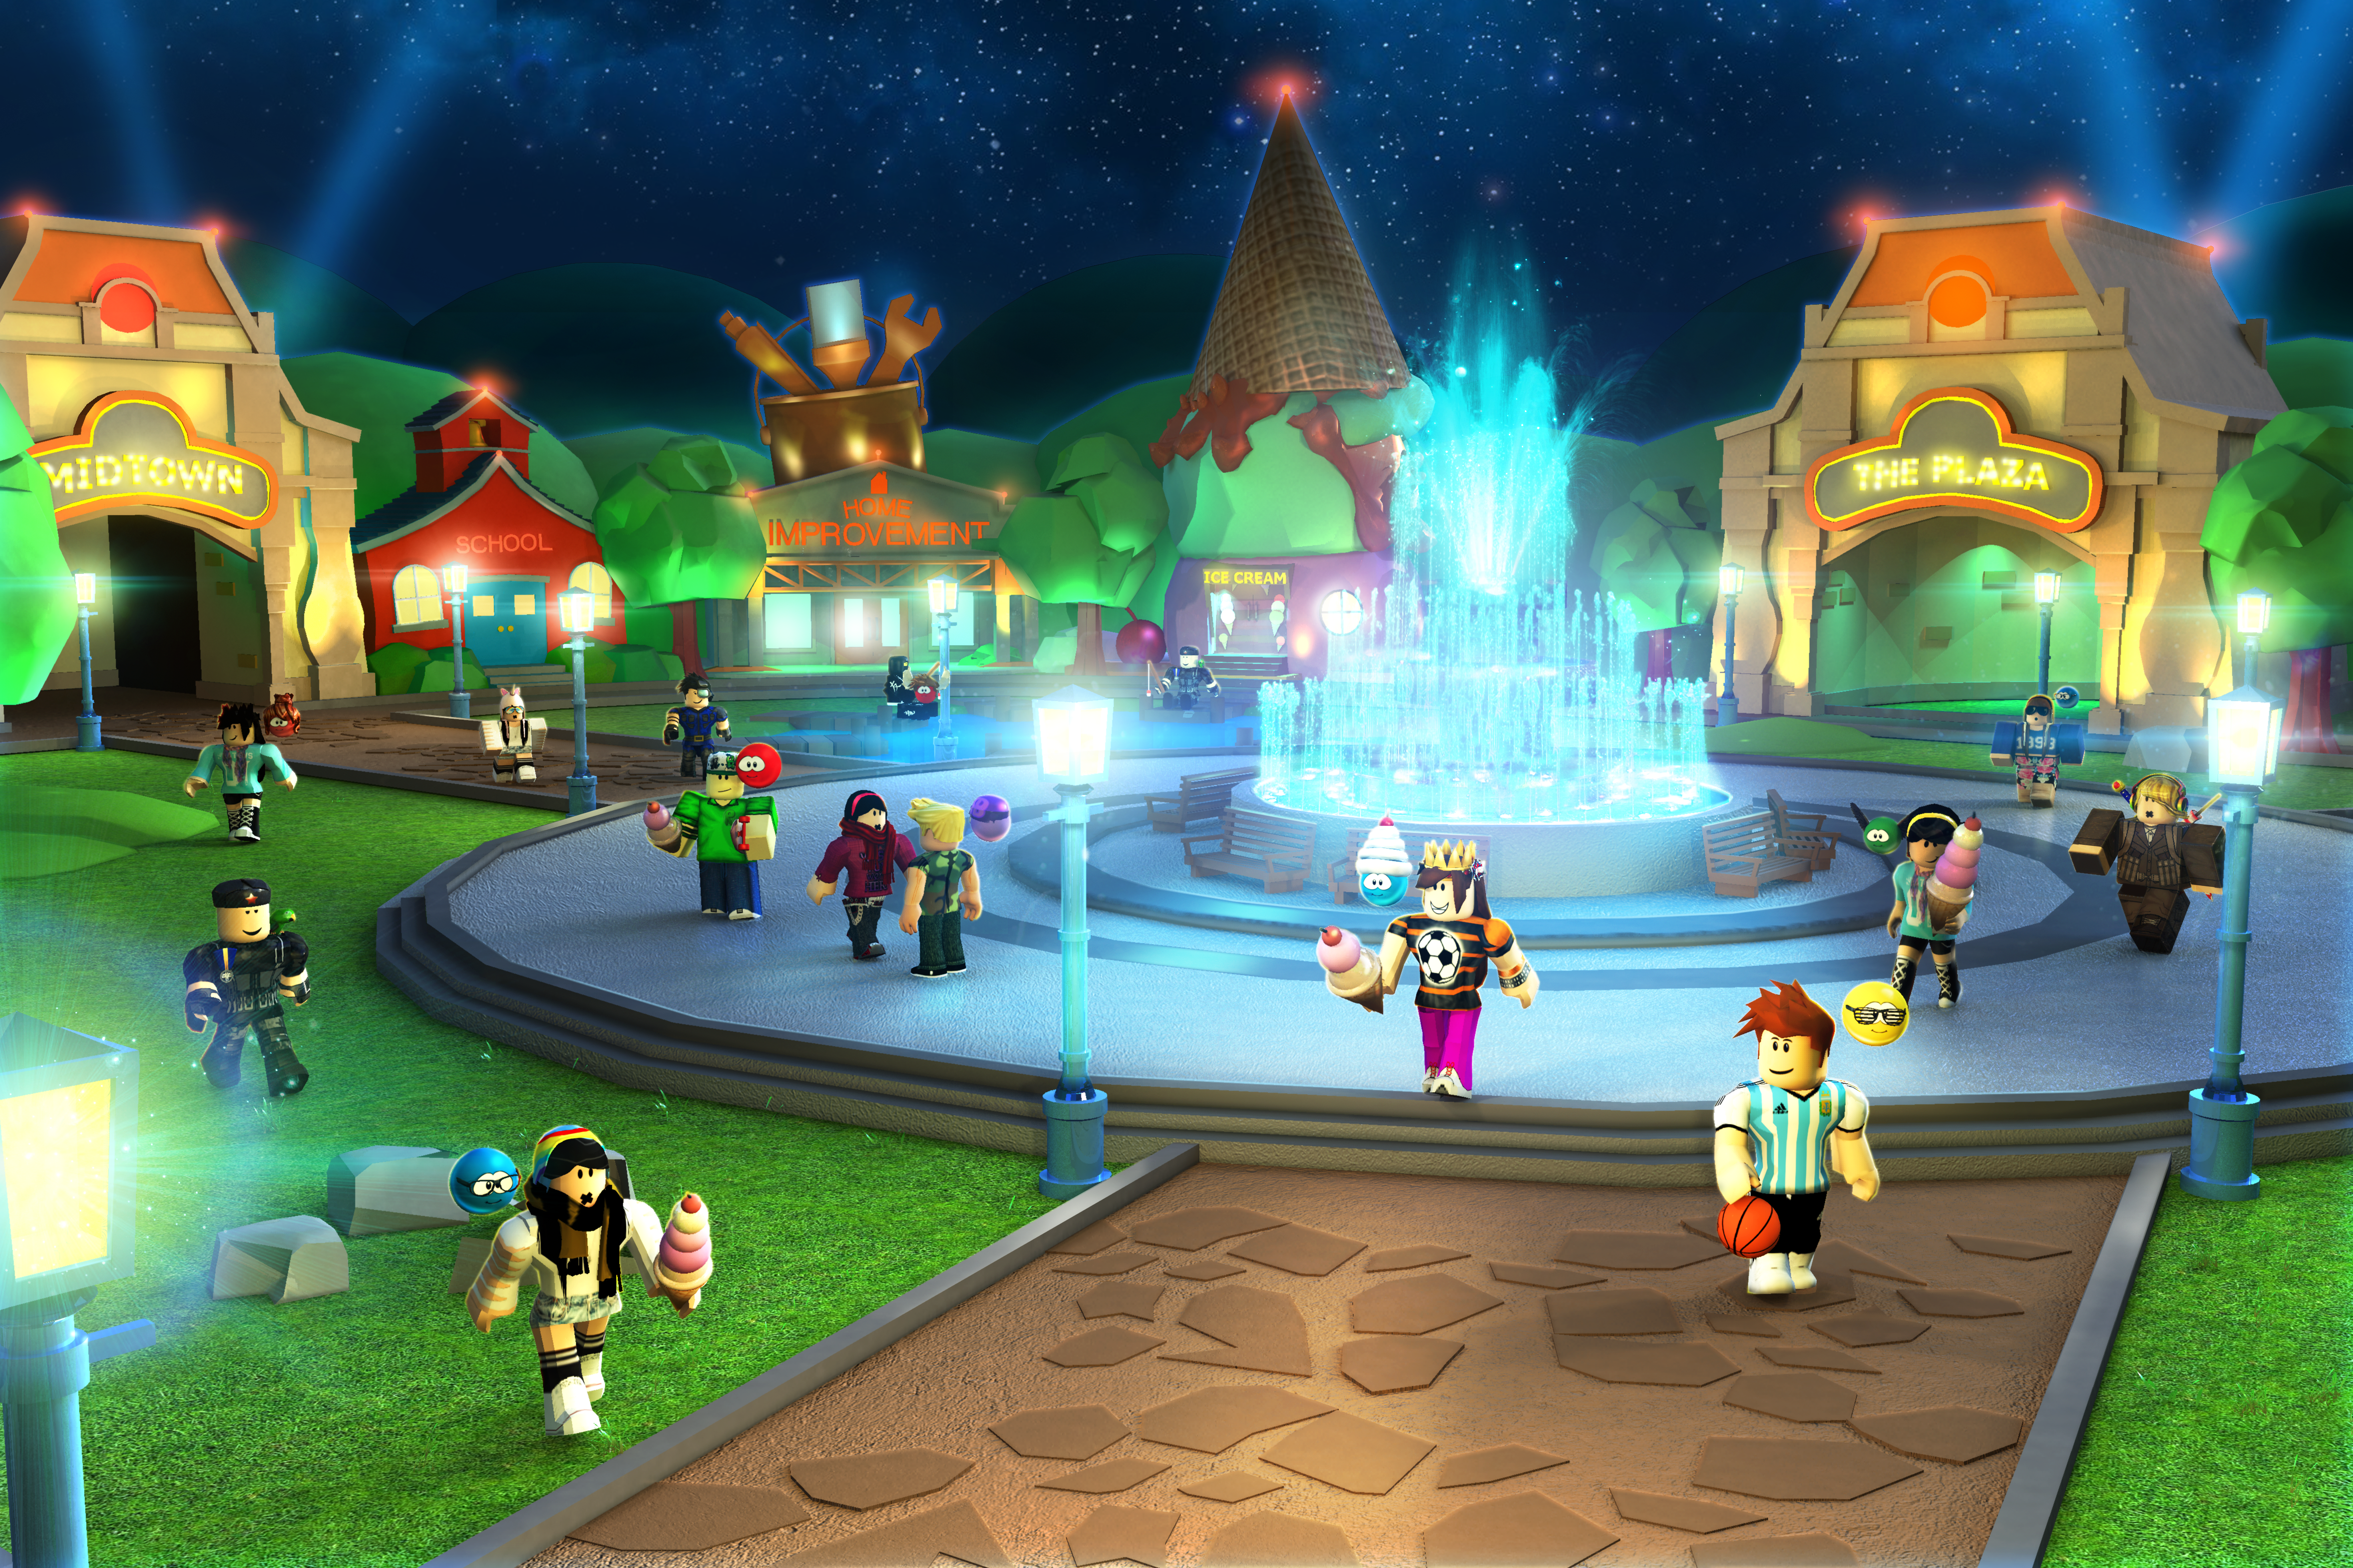 Ready Player One Themed Roblox Event Becomes A Big Mess